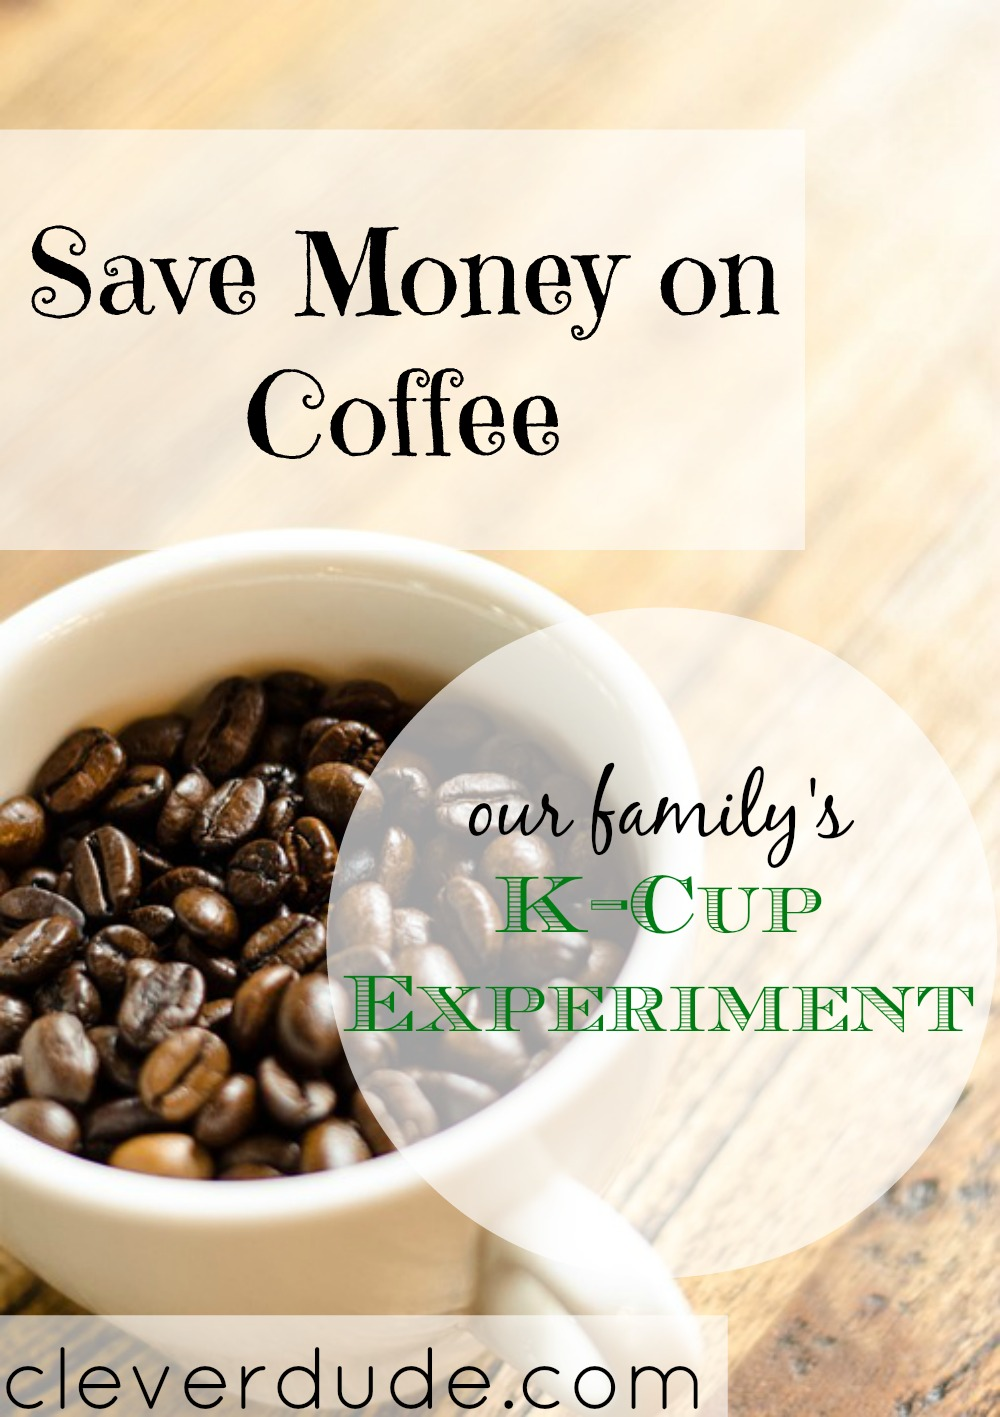 saving money on coffee, k-cup experiment, coffee saving tips, Recycling K-Cups